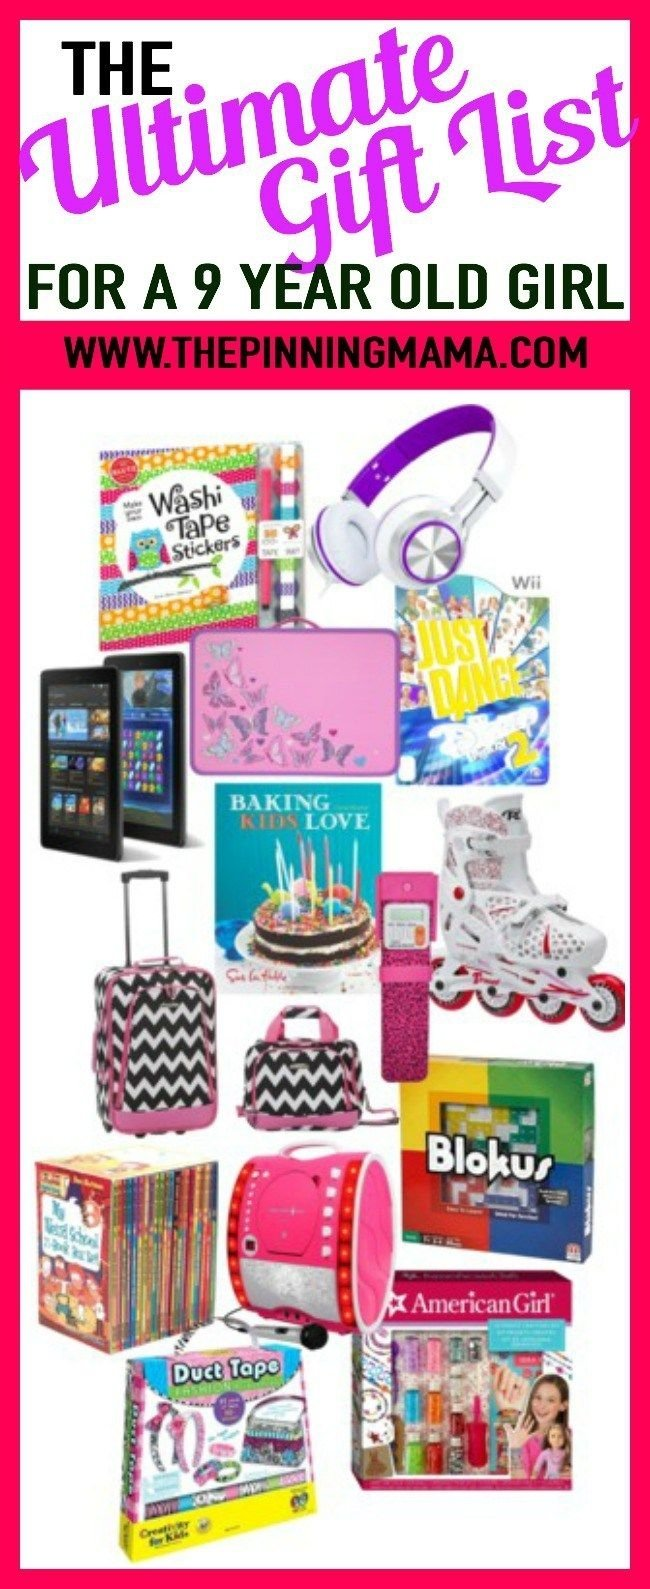 10 Great Christmas Gift Ideas For 10 Year Old Girls charming idea 6 year old christmas gift ideas best 25 9 gifts on 2020